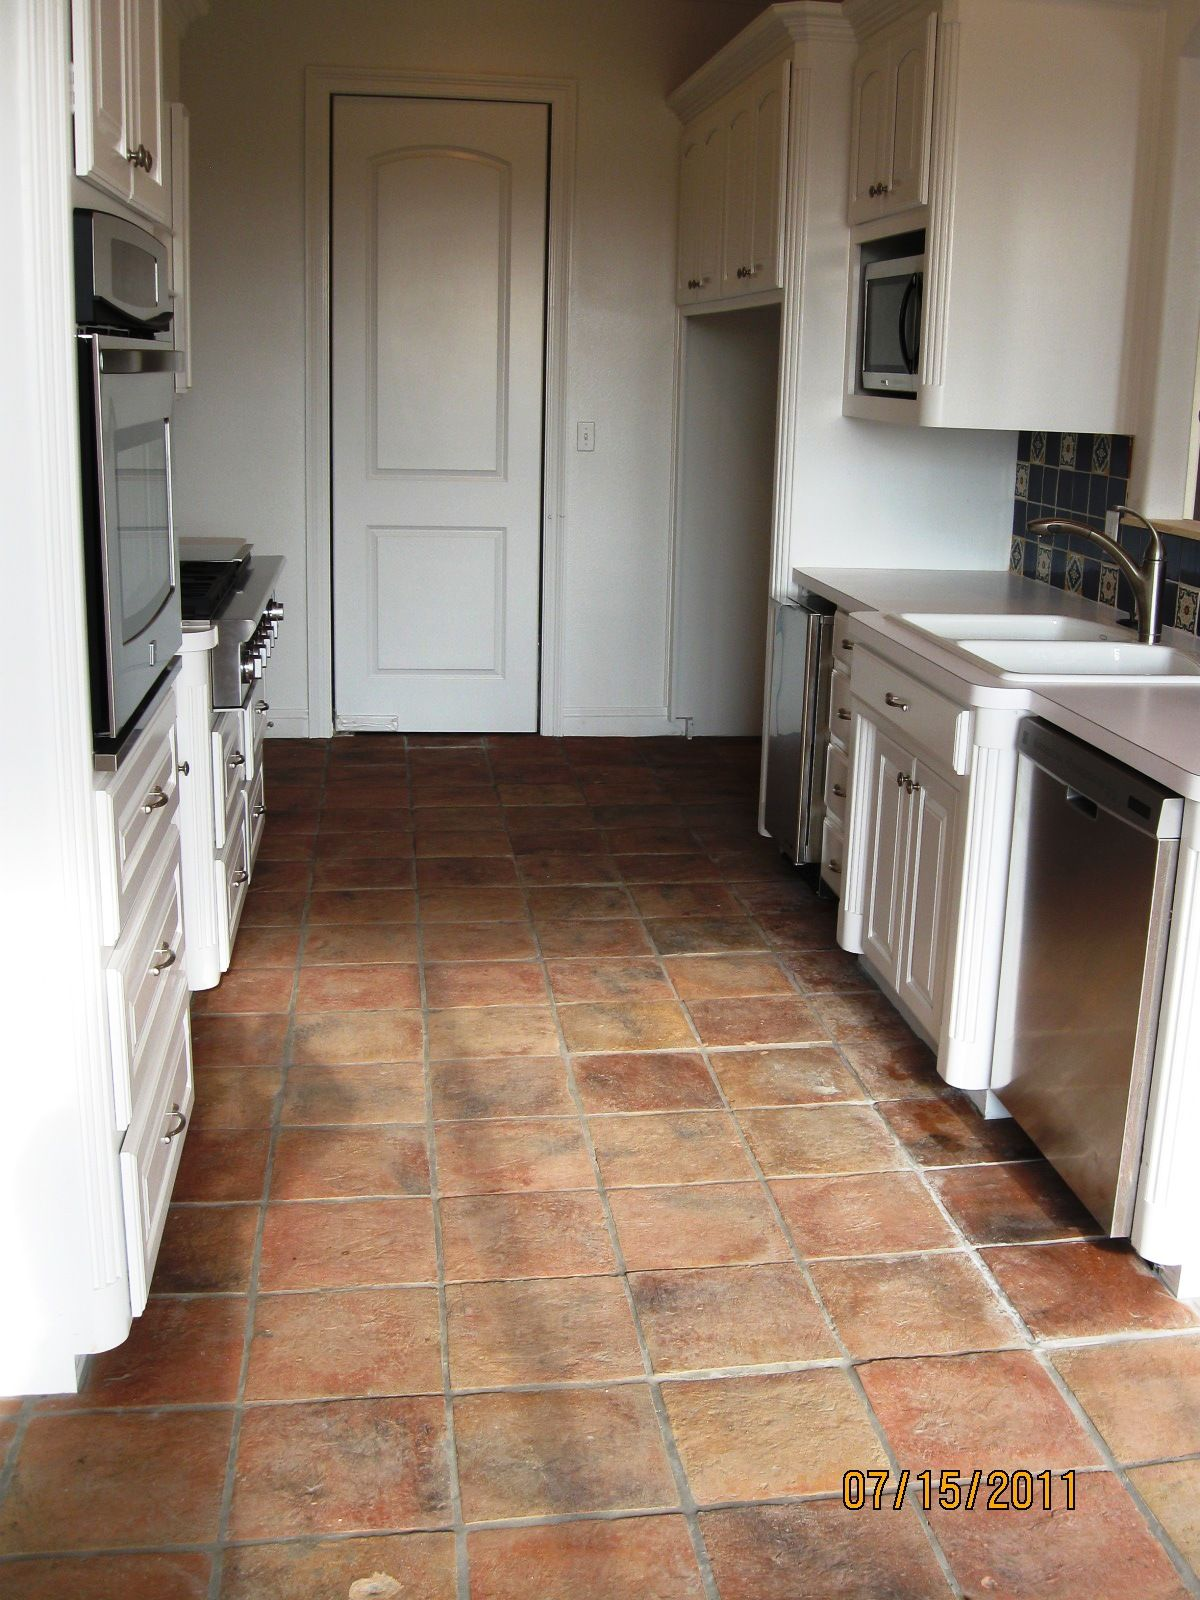 Kitchens With Saltillo Tile Floors Antique Terracotta Saltillo Tile Really Adds To The Appeal Of This